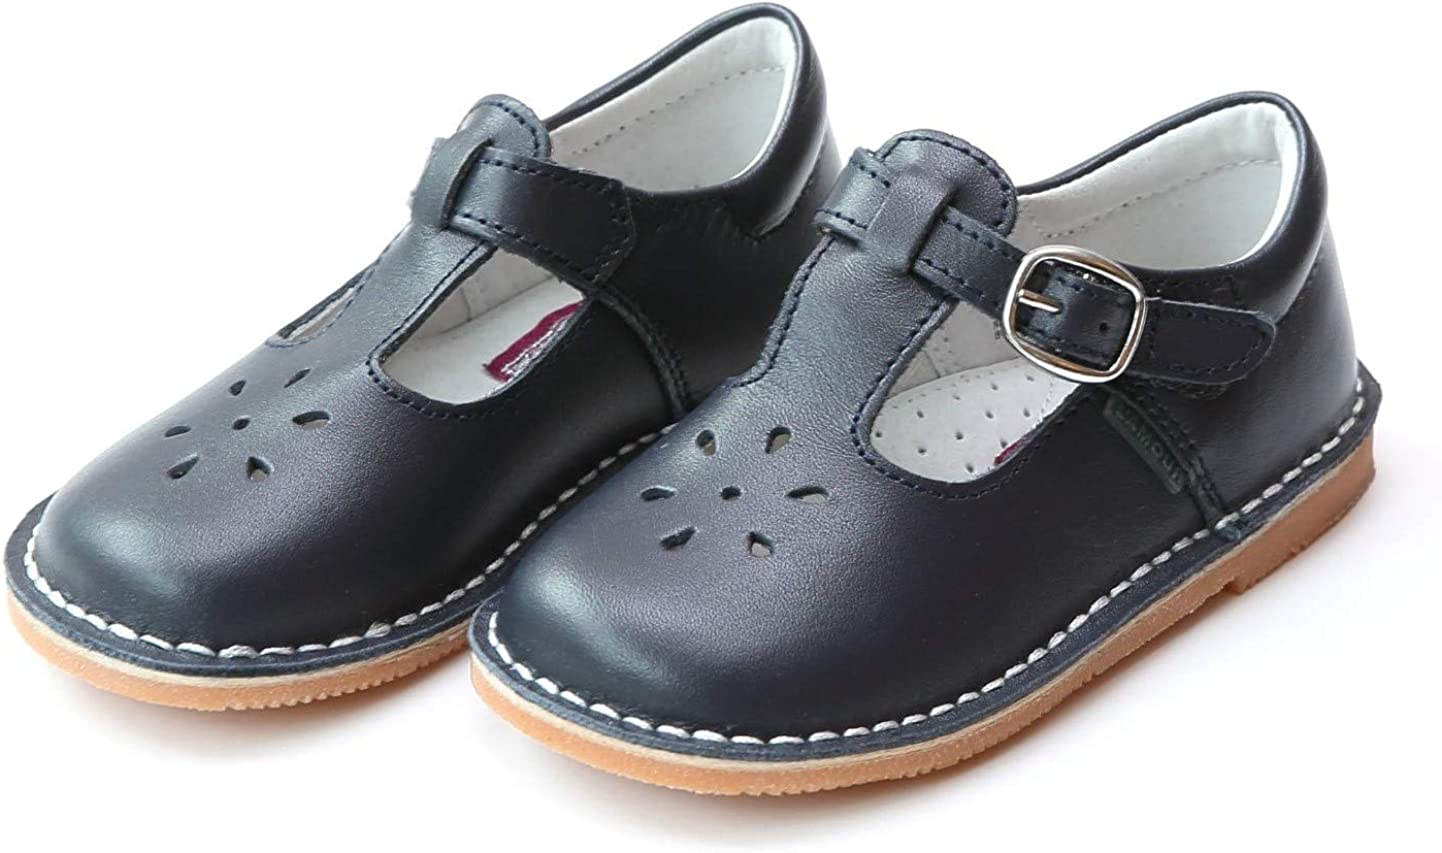 LAmour Girls T-Strap Mary Janes Navy Leather School//Dress Shoes